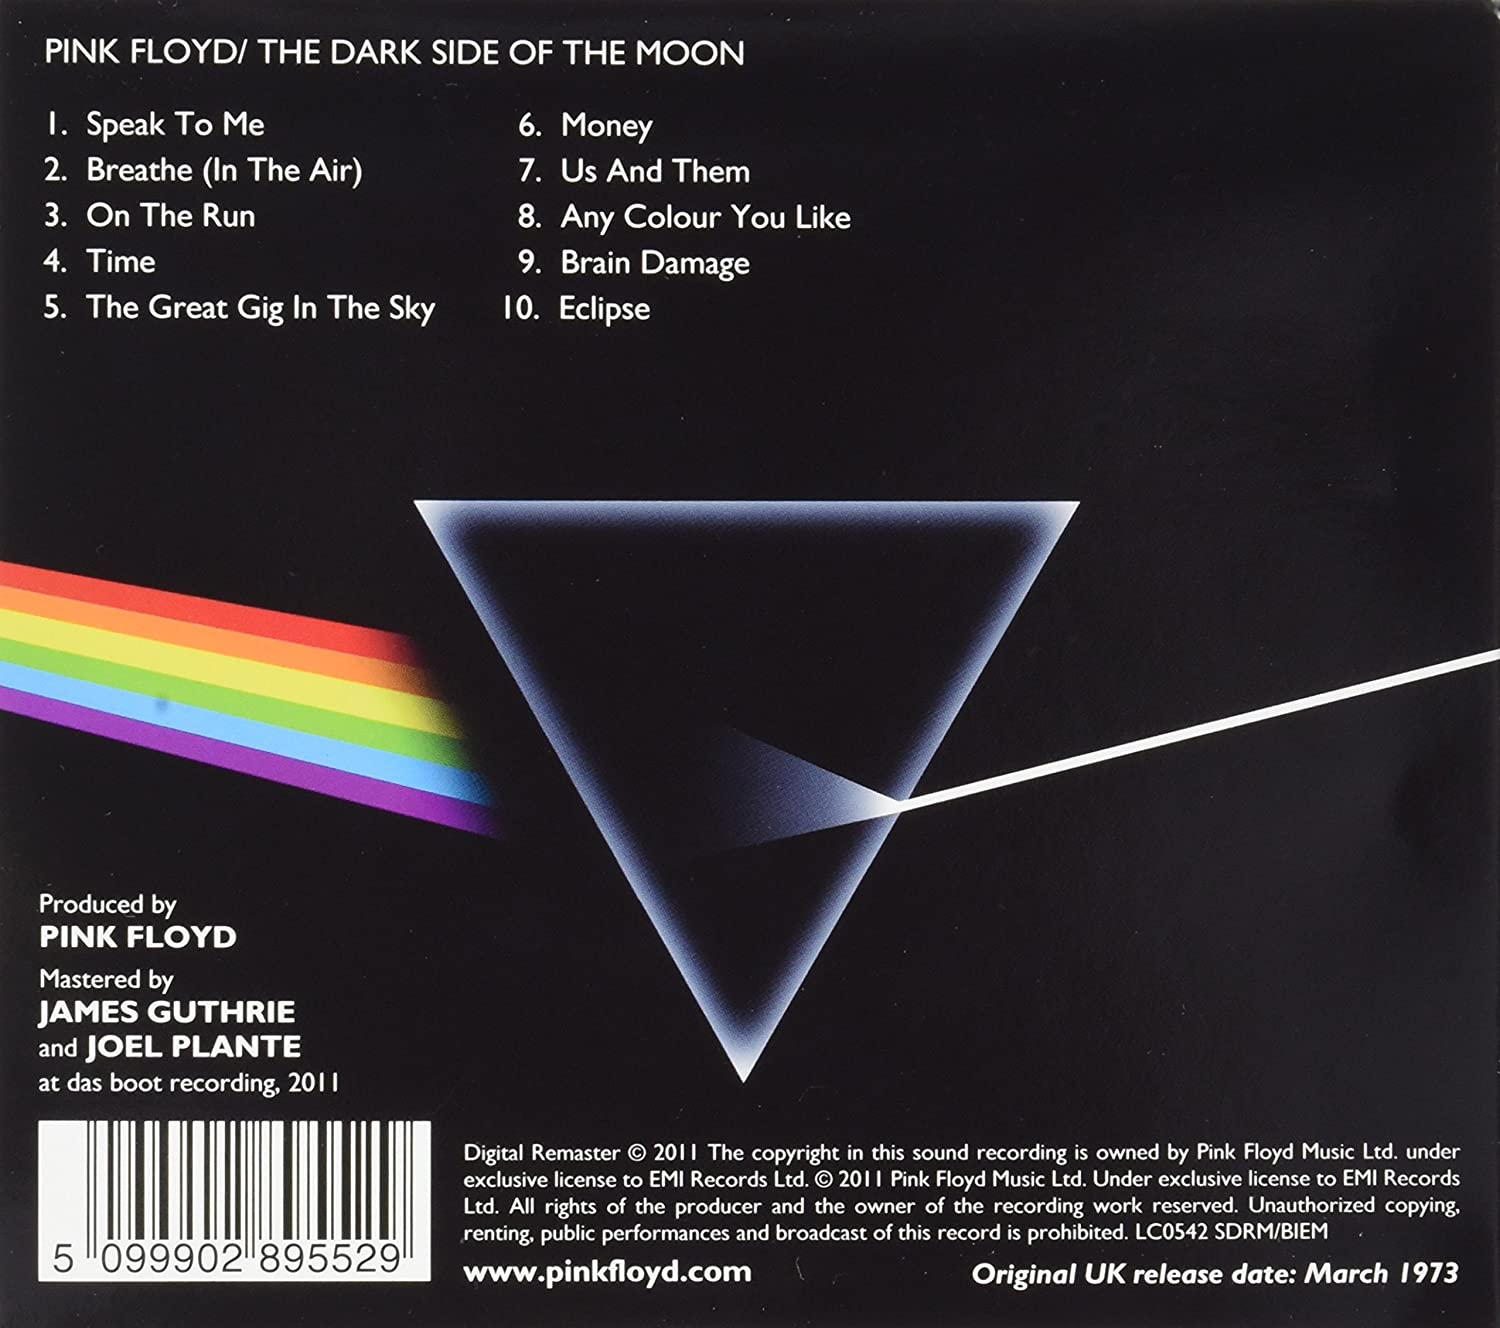 a rhetorical analysis of pink floyds the dark side of the moon When founding member syd barrett left pink floyd in the dark side of the moon reinventing pink floyd charts the creative astute and entertaining analysis.